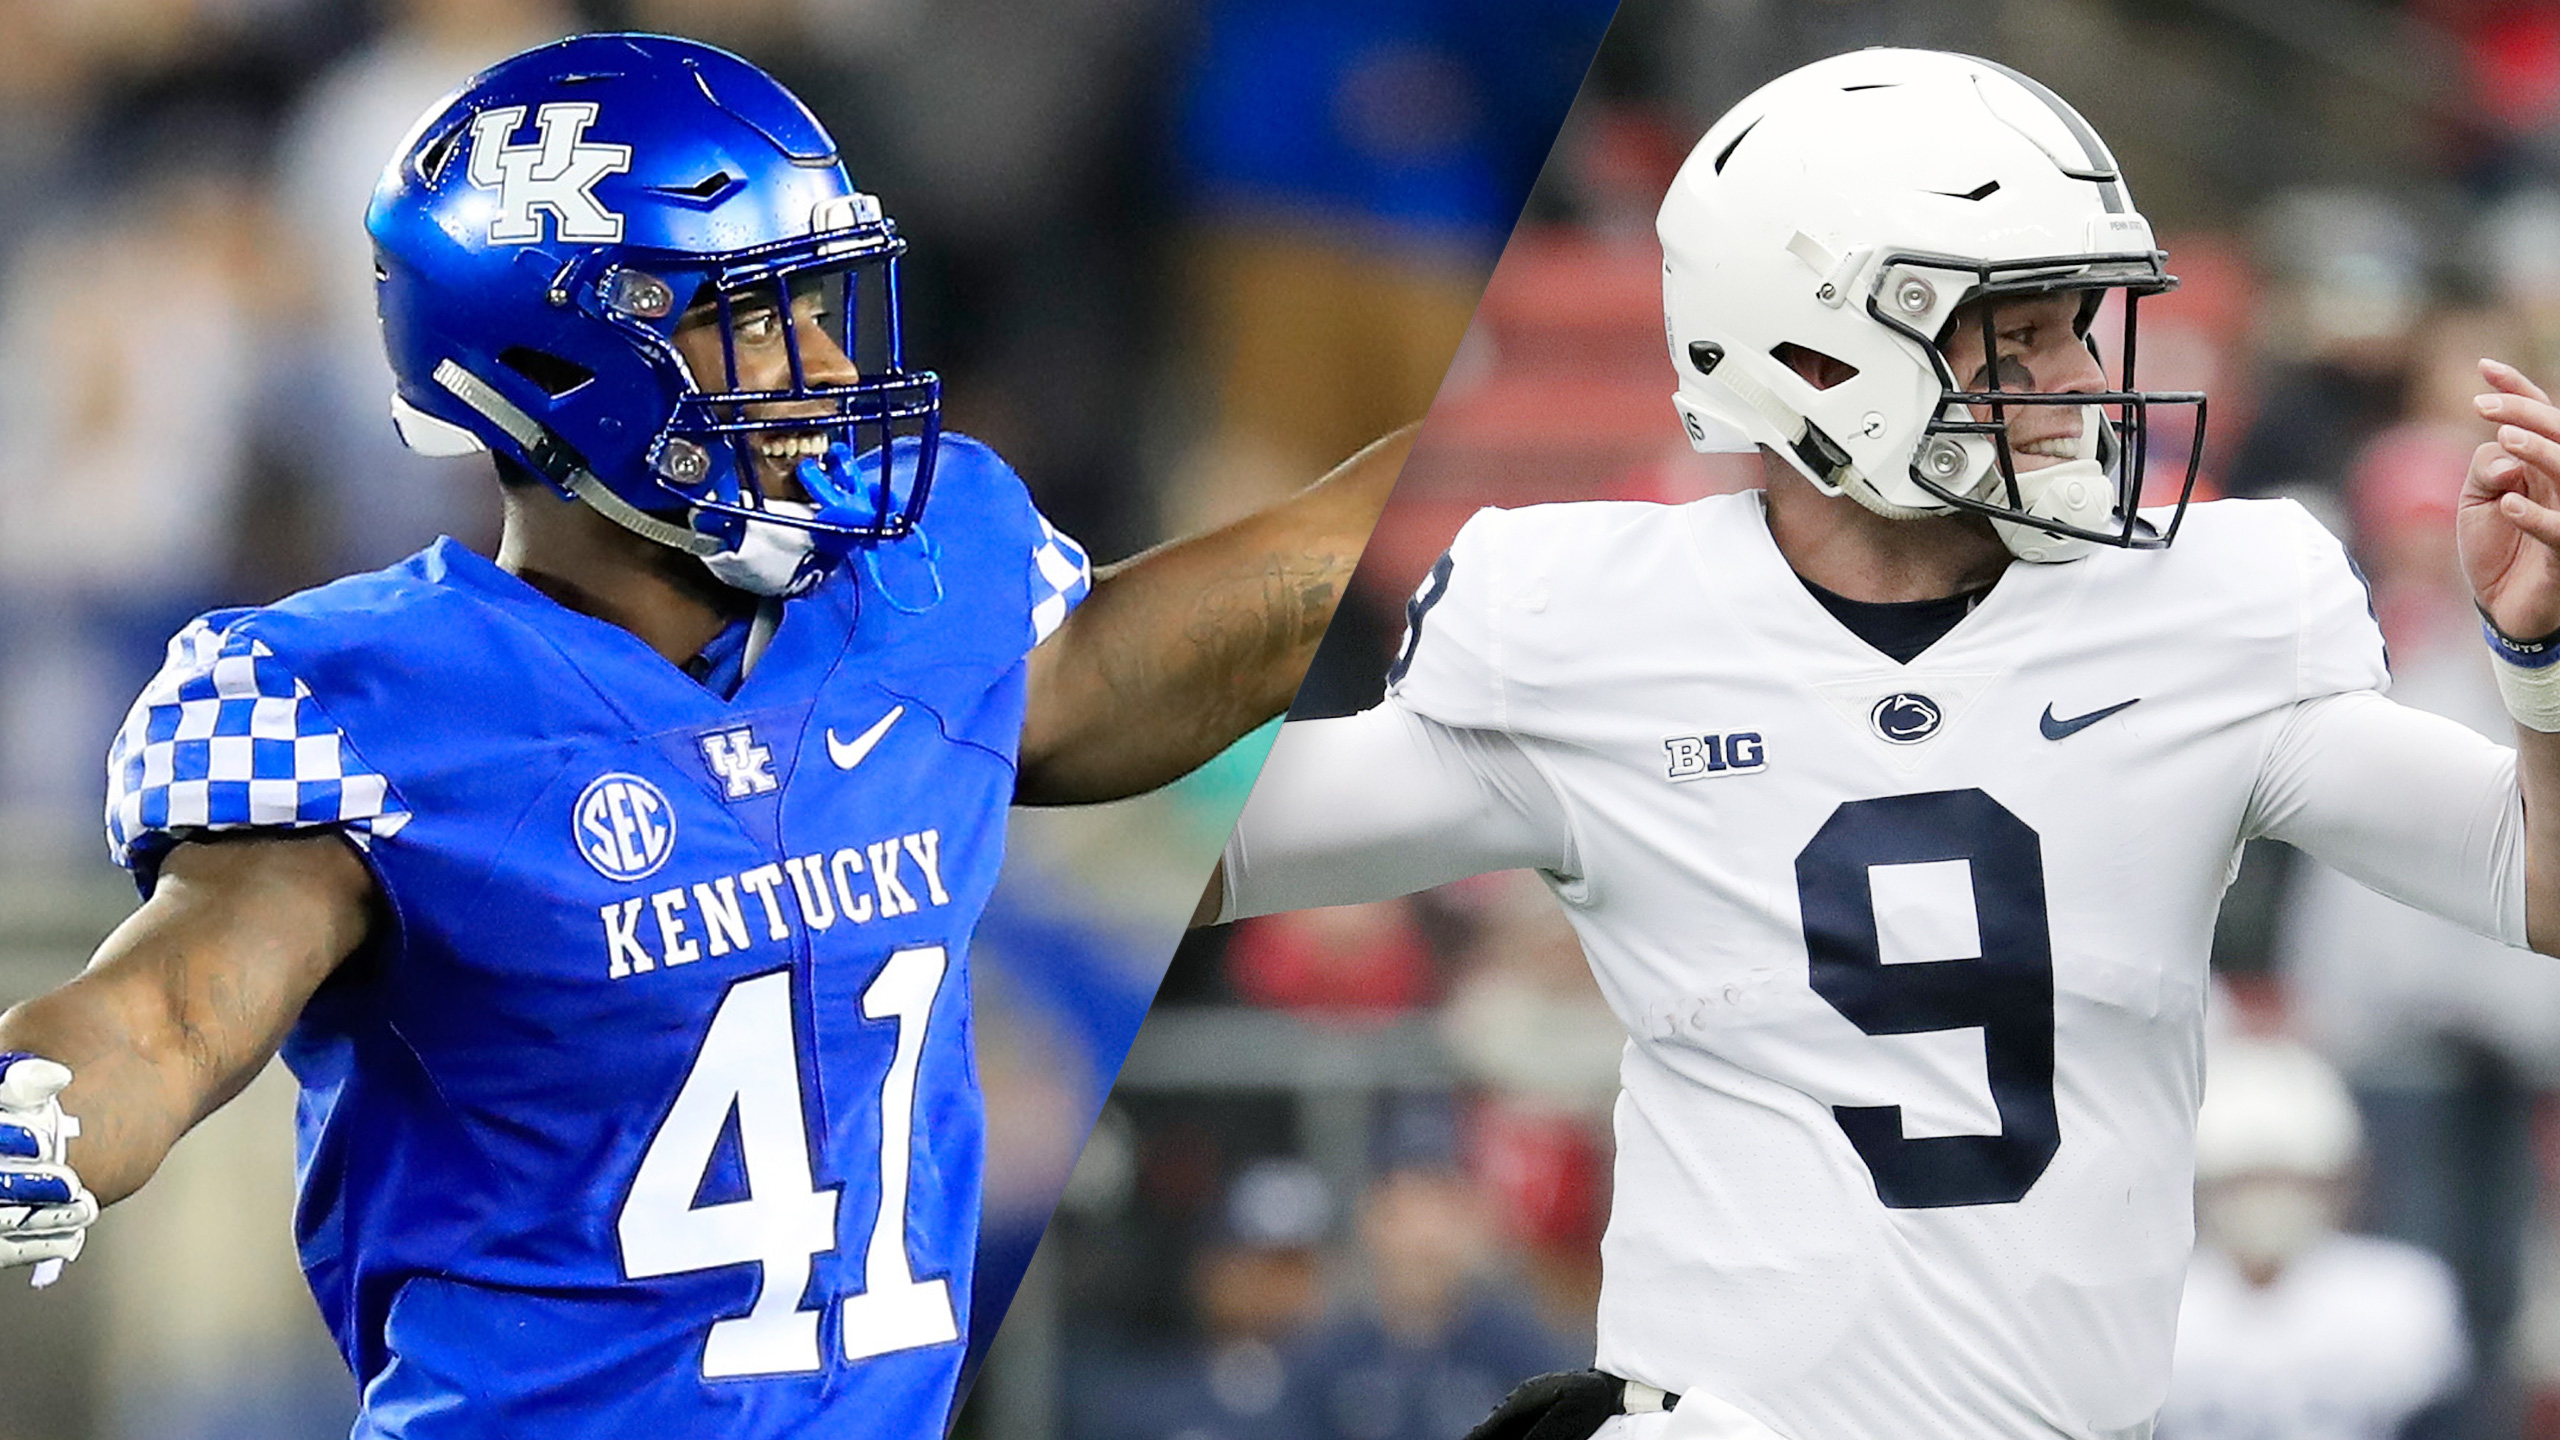 #14 Kentucky vs. #12 Penn State (re-air)